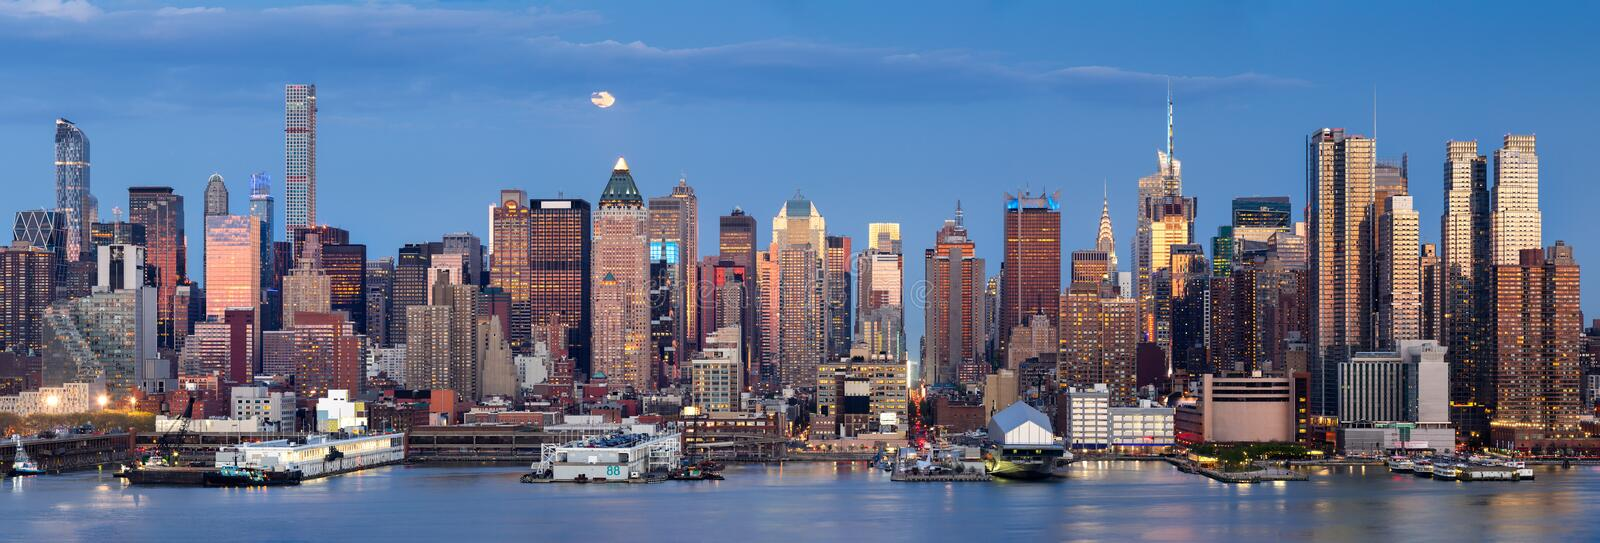 Moonrise over Midtown West with Manhattan skyline, New York City. Midtown West Manhattan skyscrapers over the Hudson River. Panoramic view in early evening with stock photo